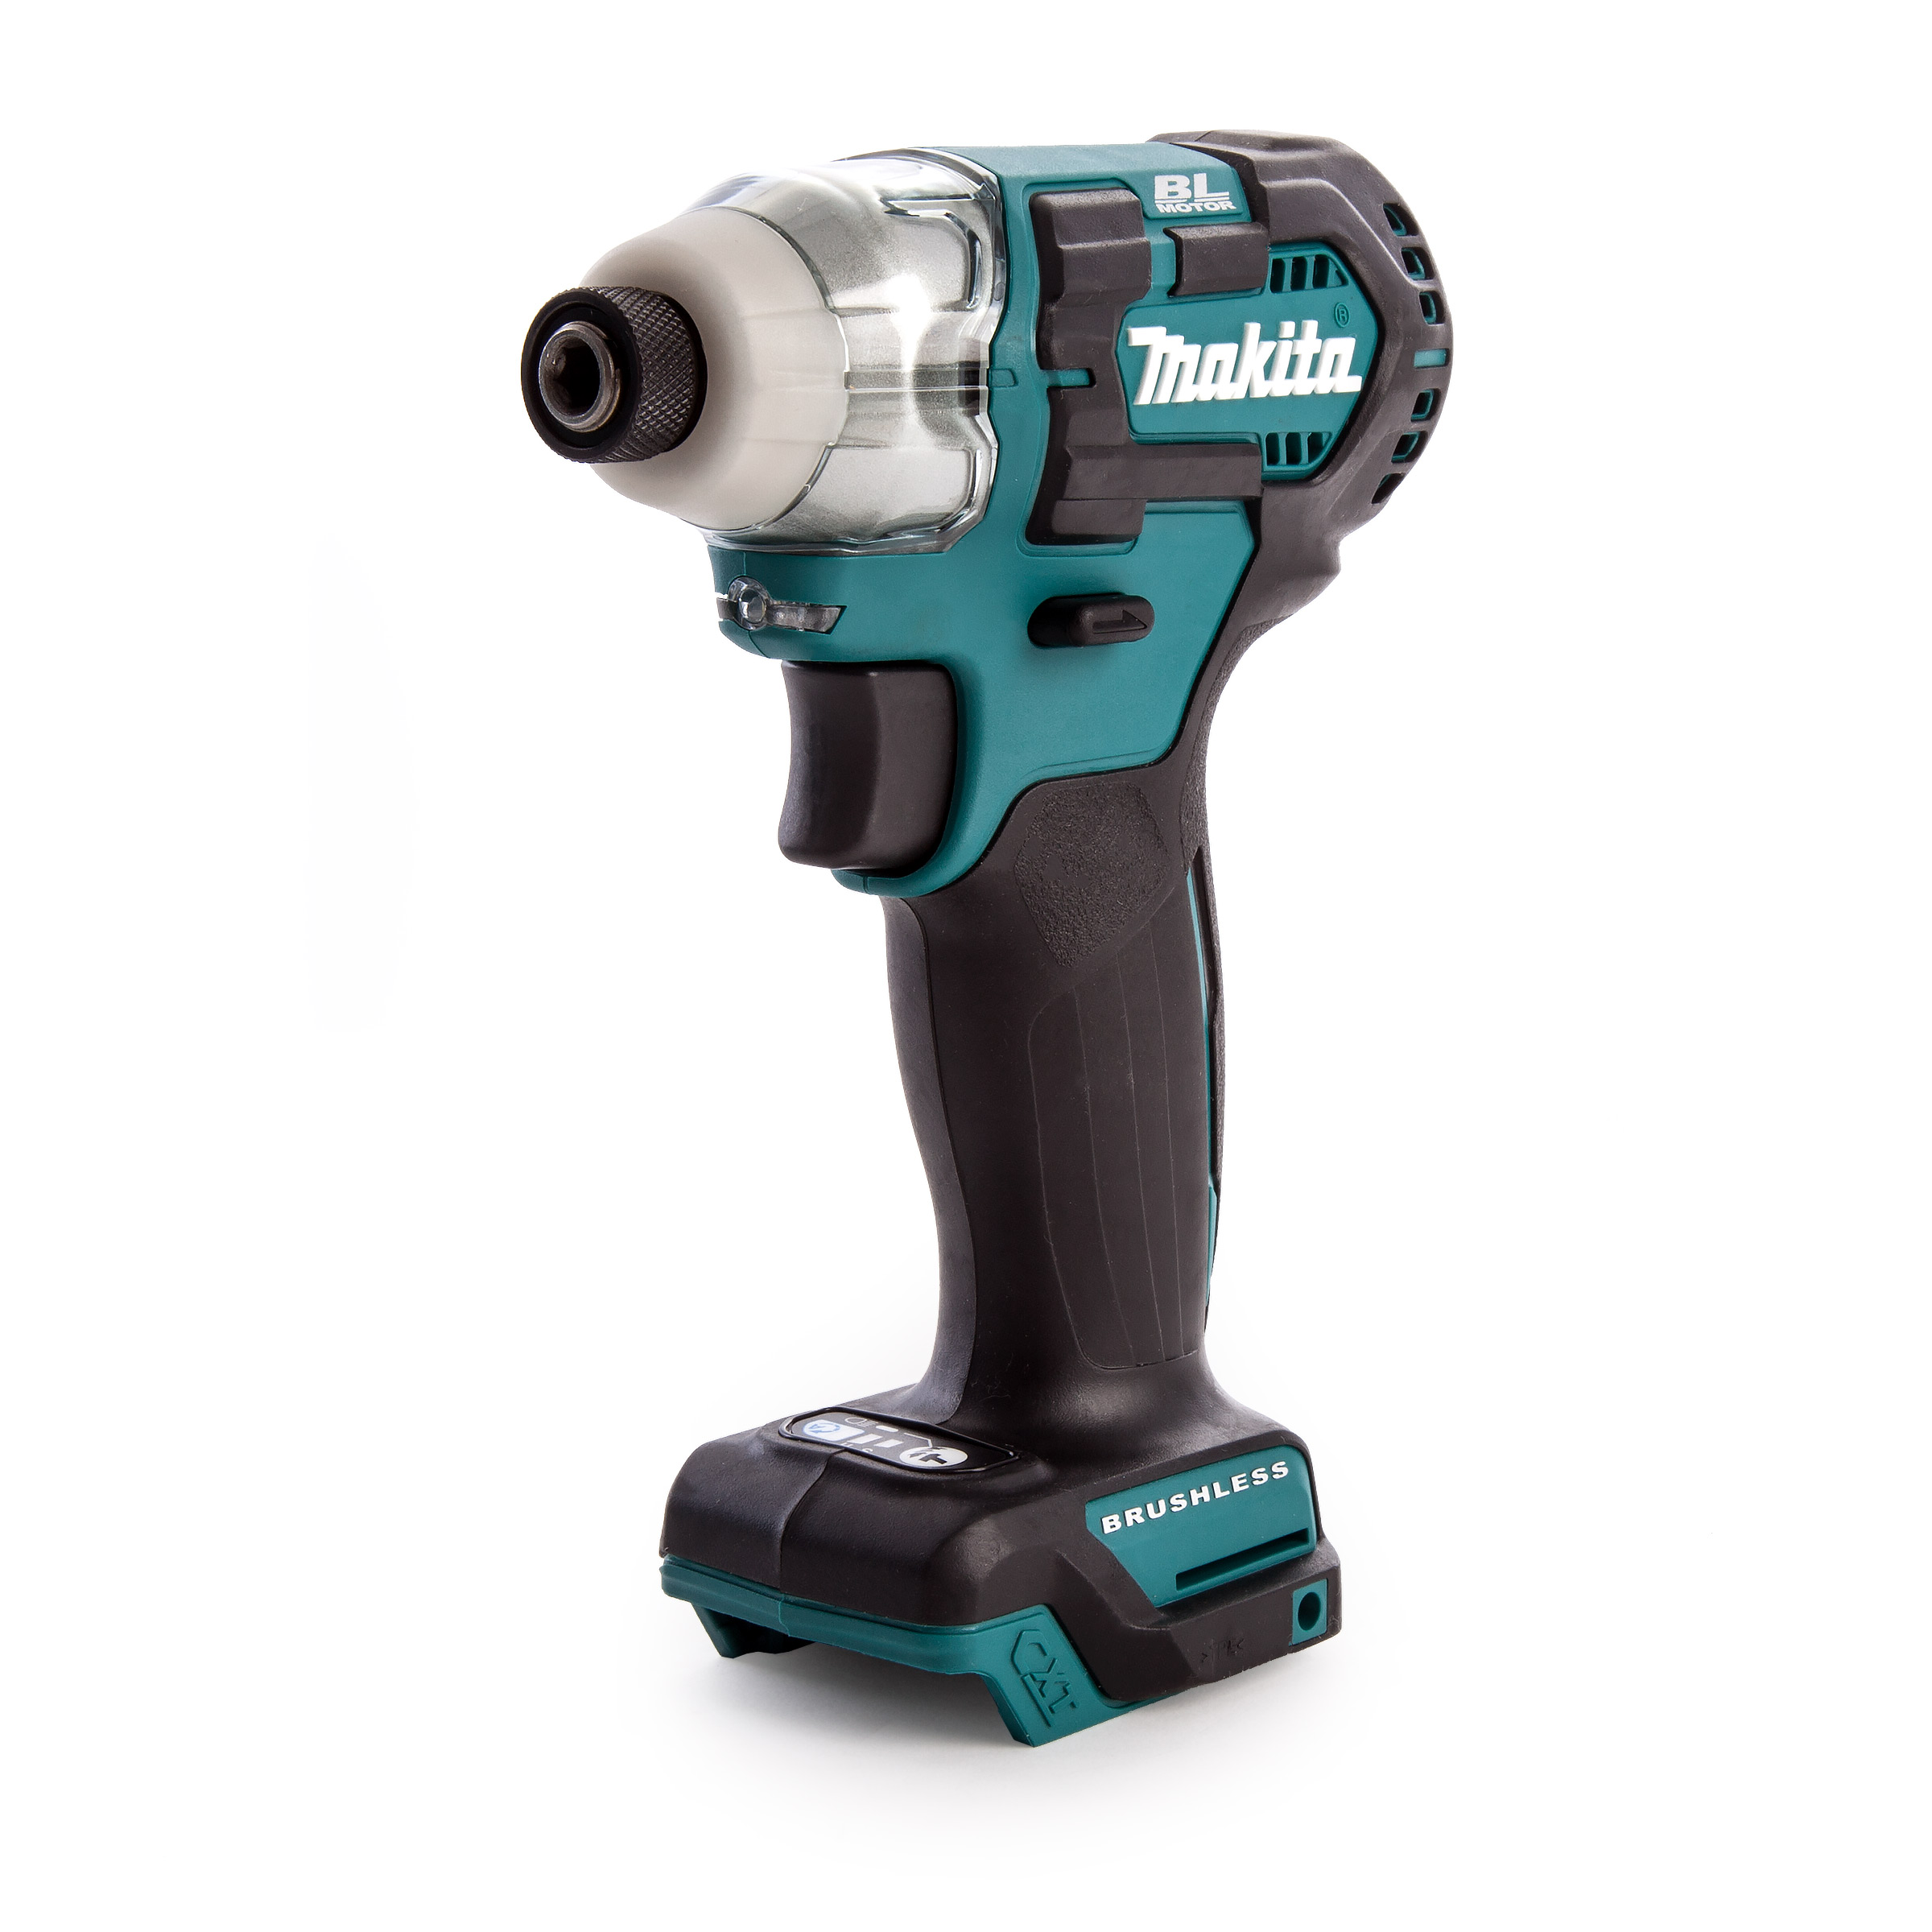 MAKITA 10.8V CXT BRUSHLESS IMPACT DRIVER - BODY ONLY